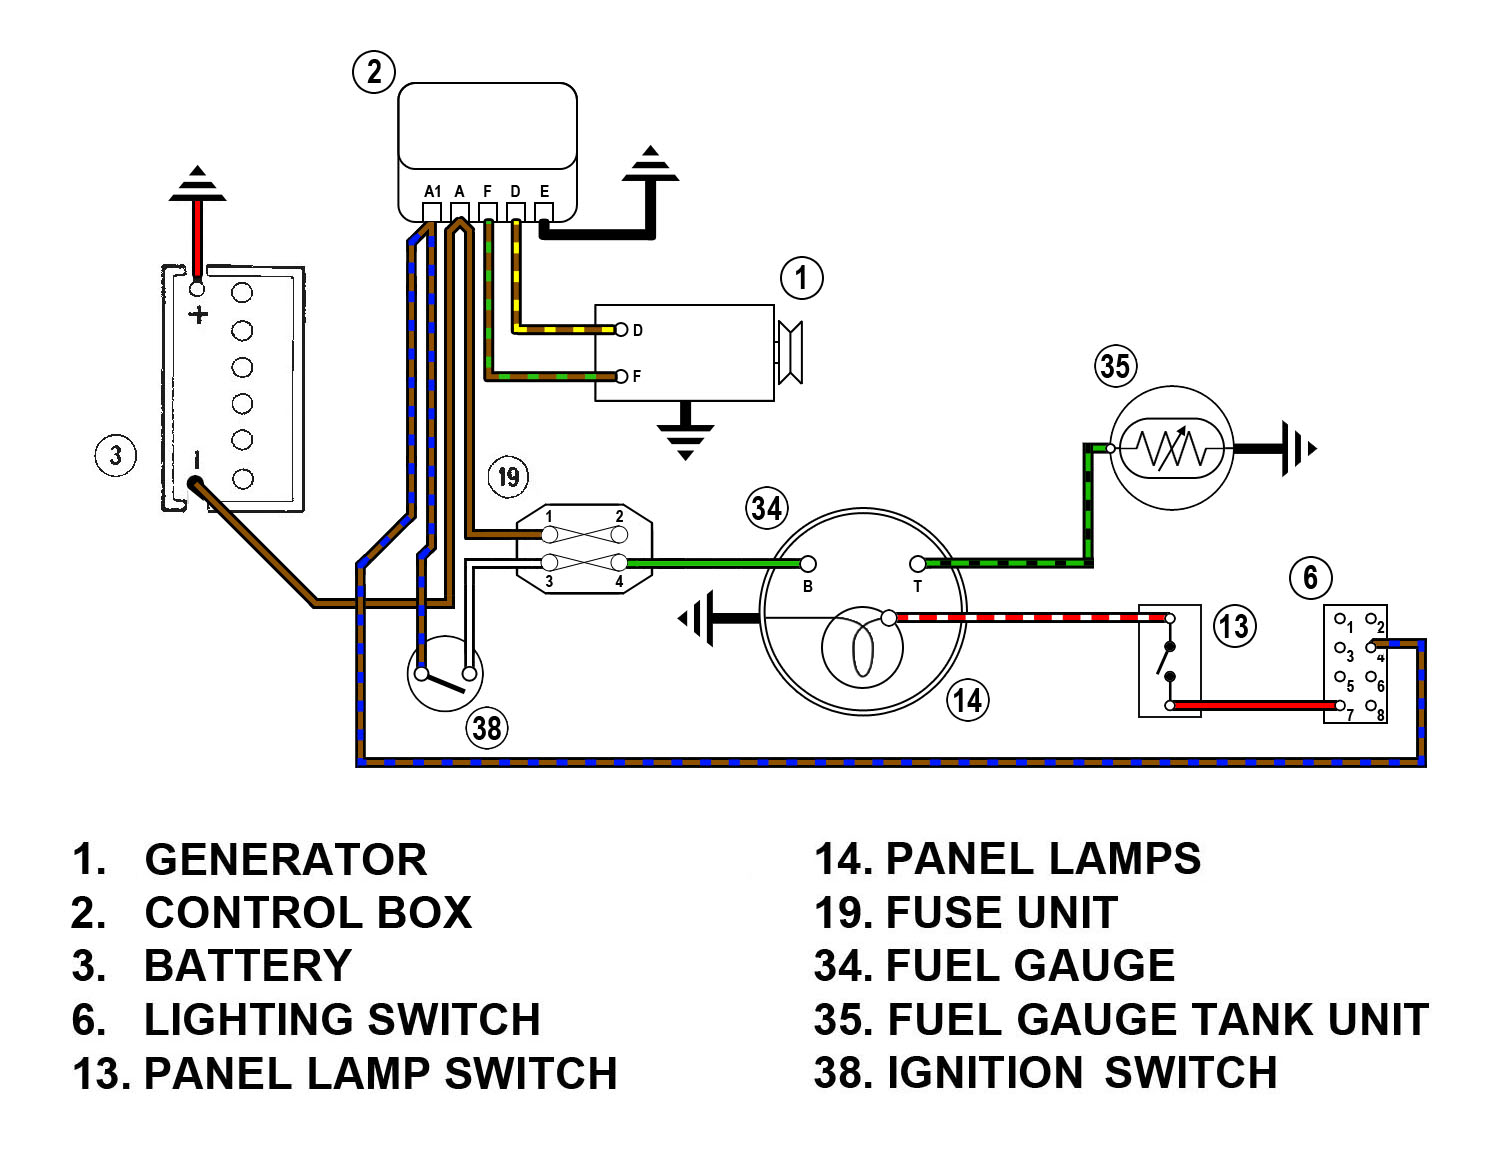 FuelGaugeWiringSpMkII_MGMkI gauge wiring diagram veethree gauges wiring diagrams \u2022 wiring Autometer Gauge Brackets at crackthecode.co